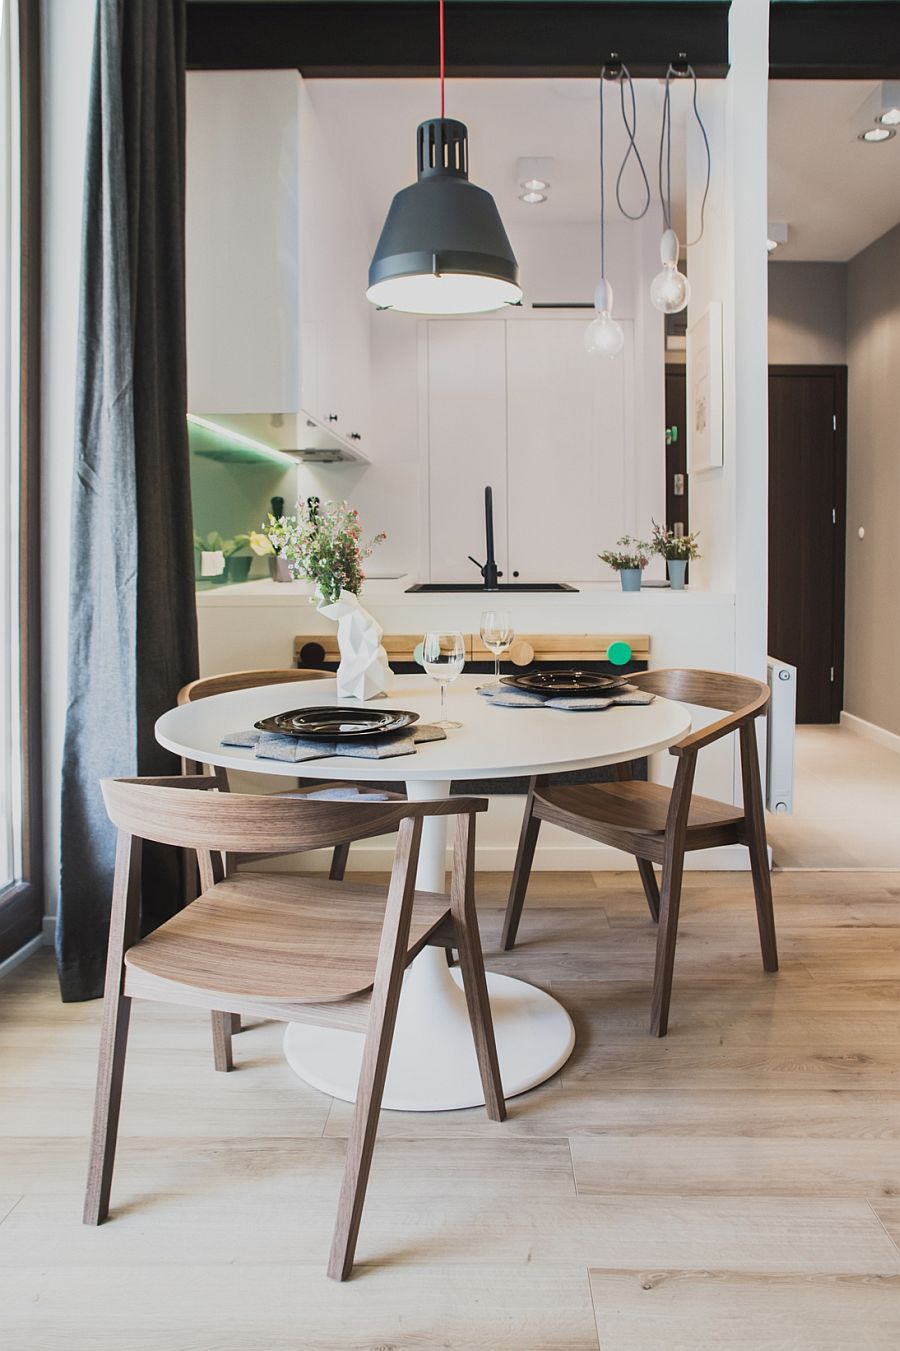 Small dining space for space-savvy apartment with round table and pendant light in gray